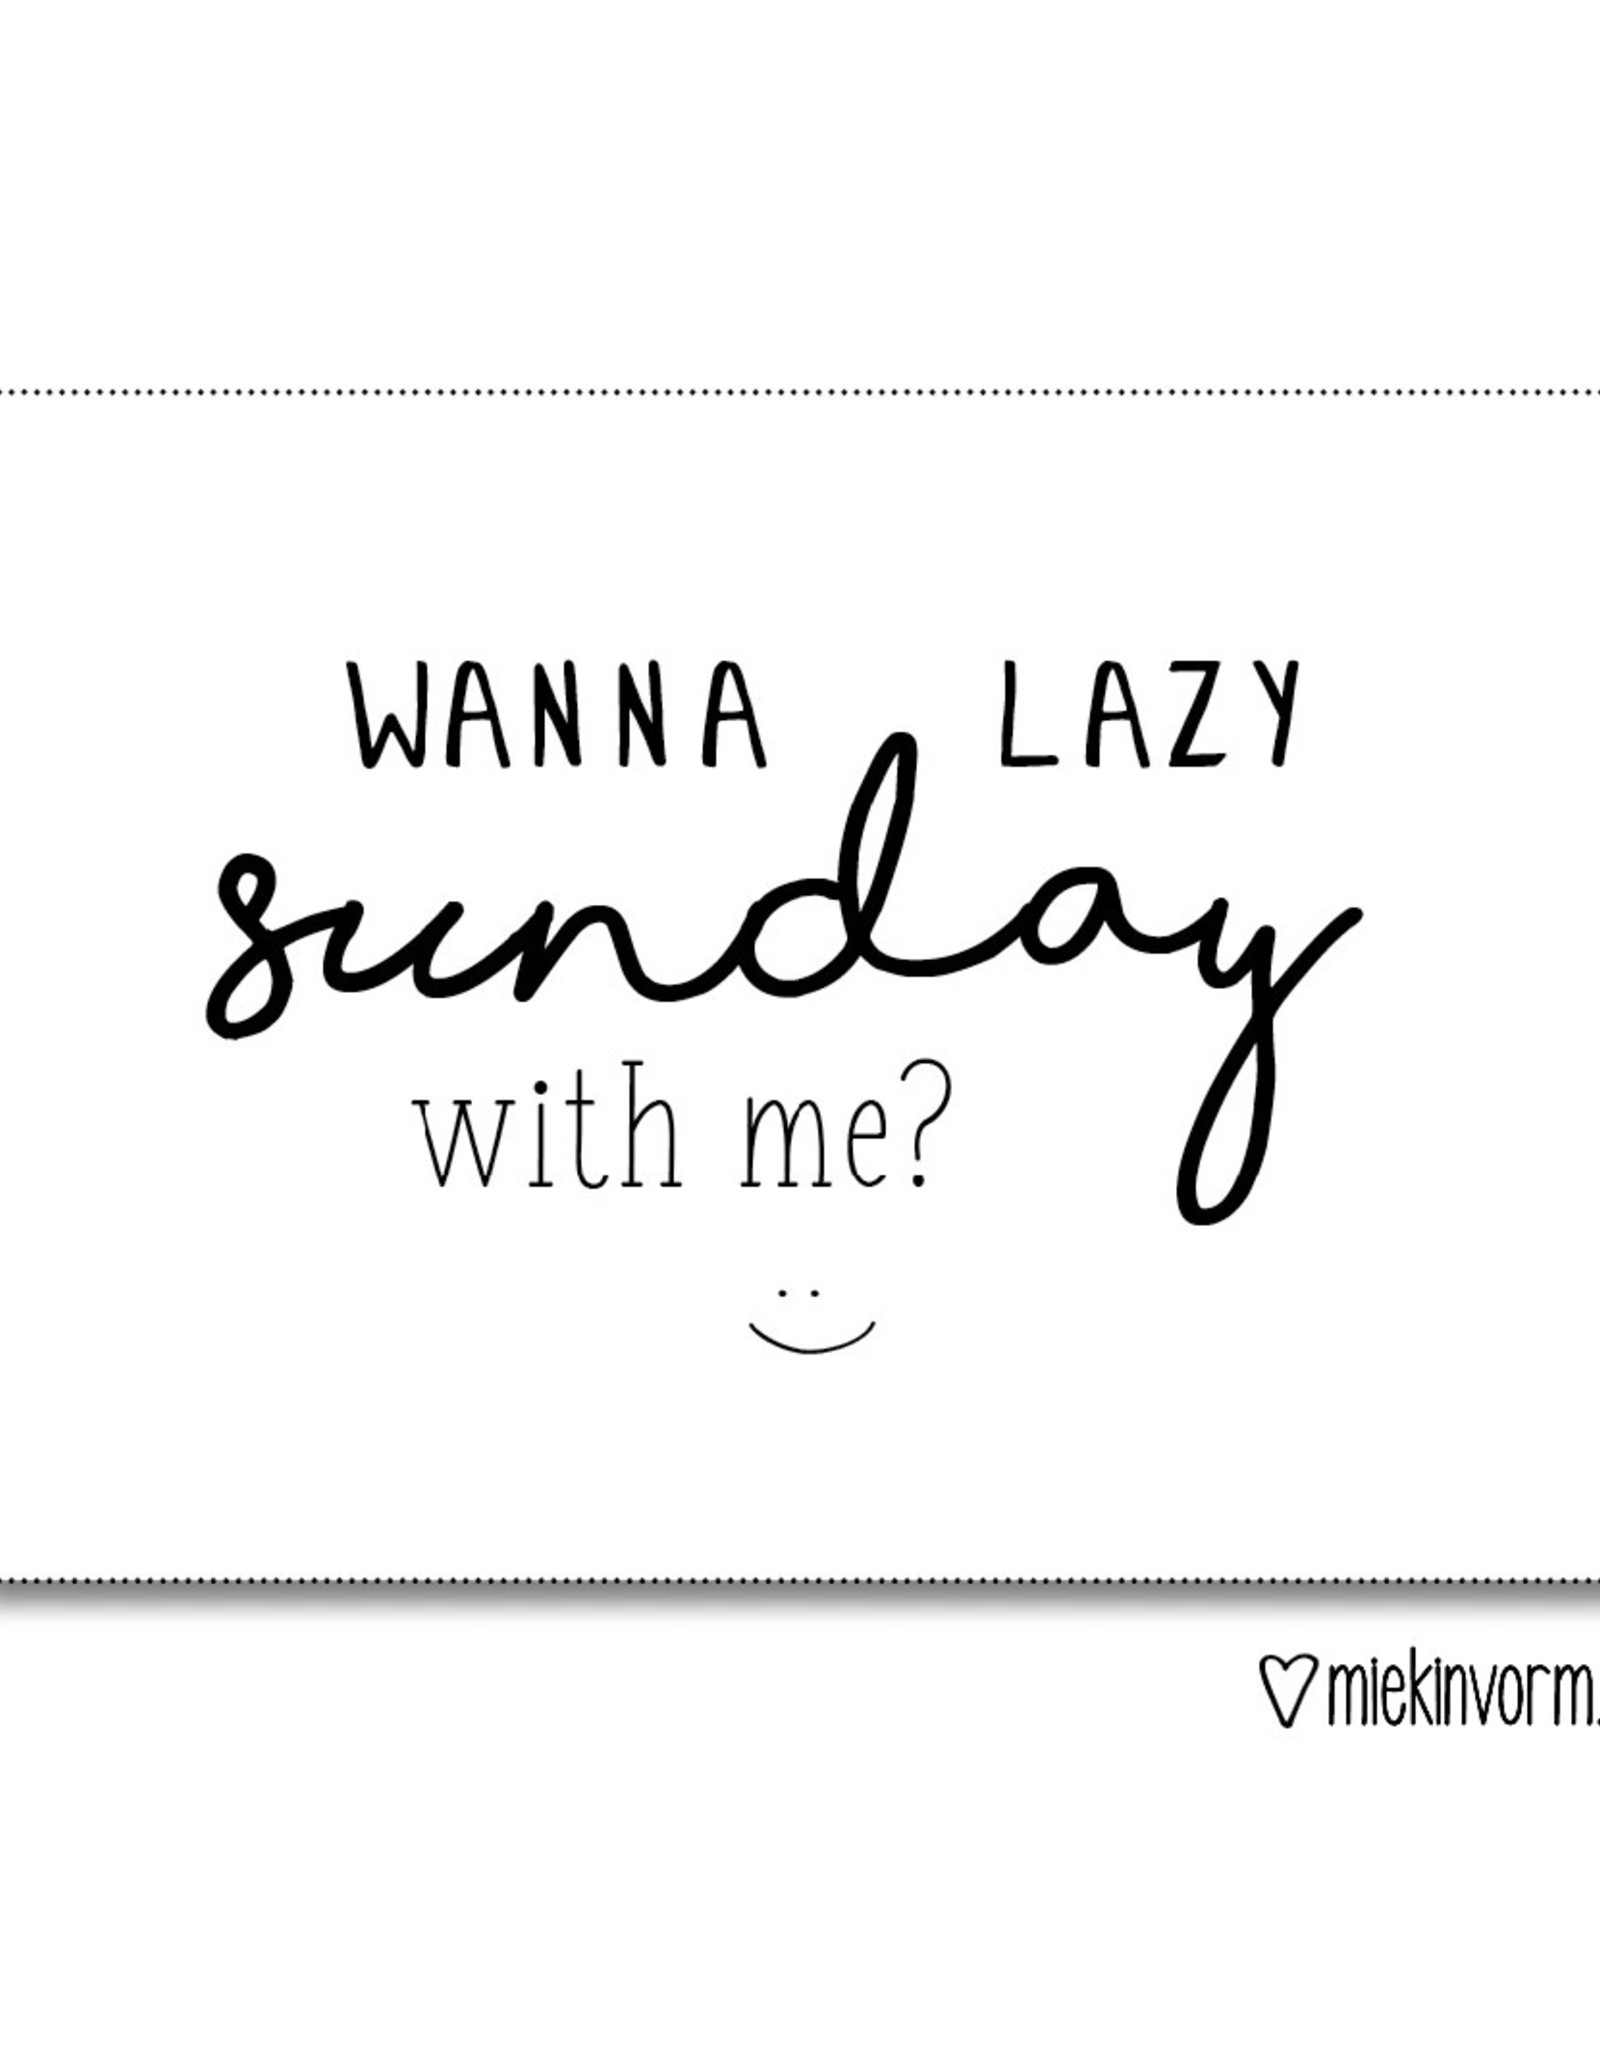 Miek in vorm kaart a6 miek in vorm: wanna lazy sunday with me?